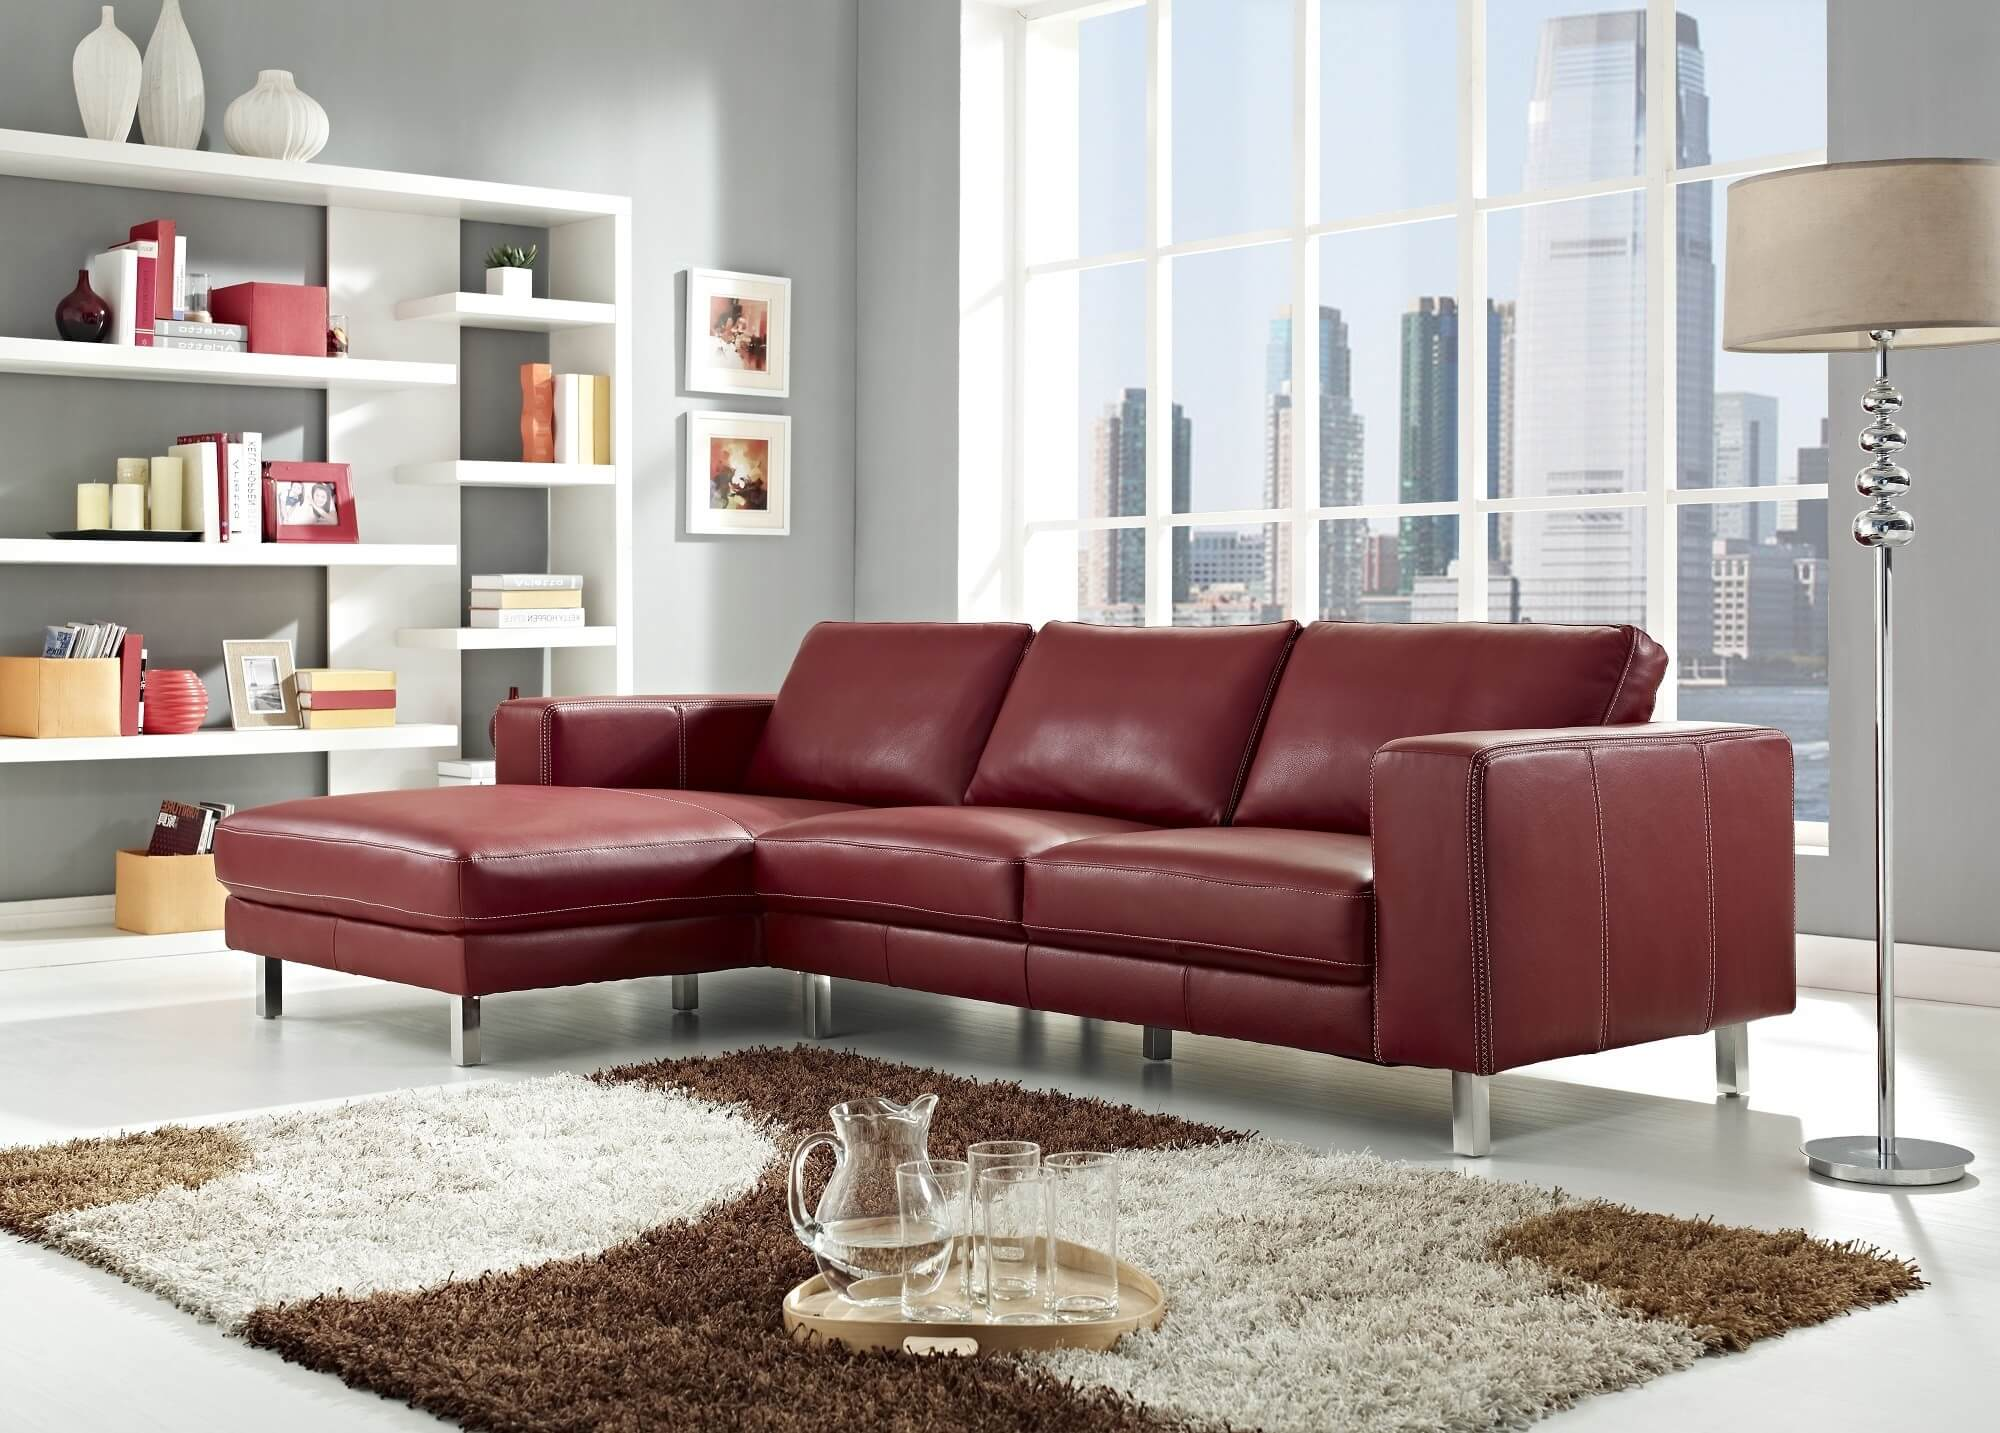 Anika Modern Red Leather Chaise Sectional : leather chaise couch - Sectionals, Sofas & Couches